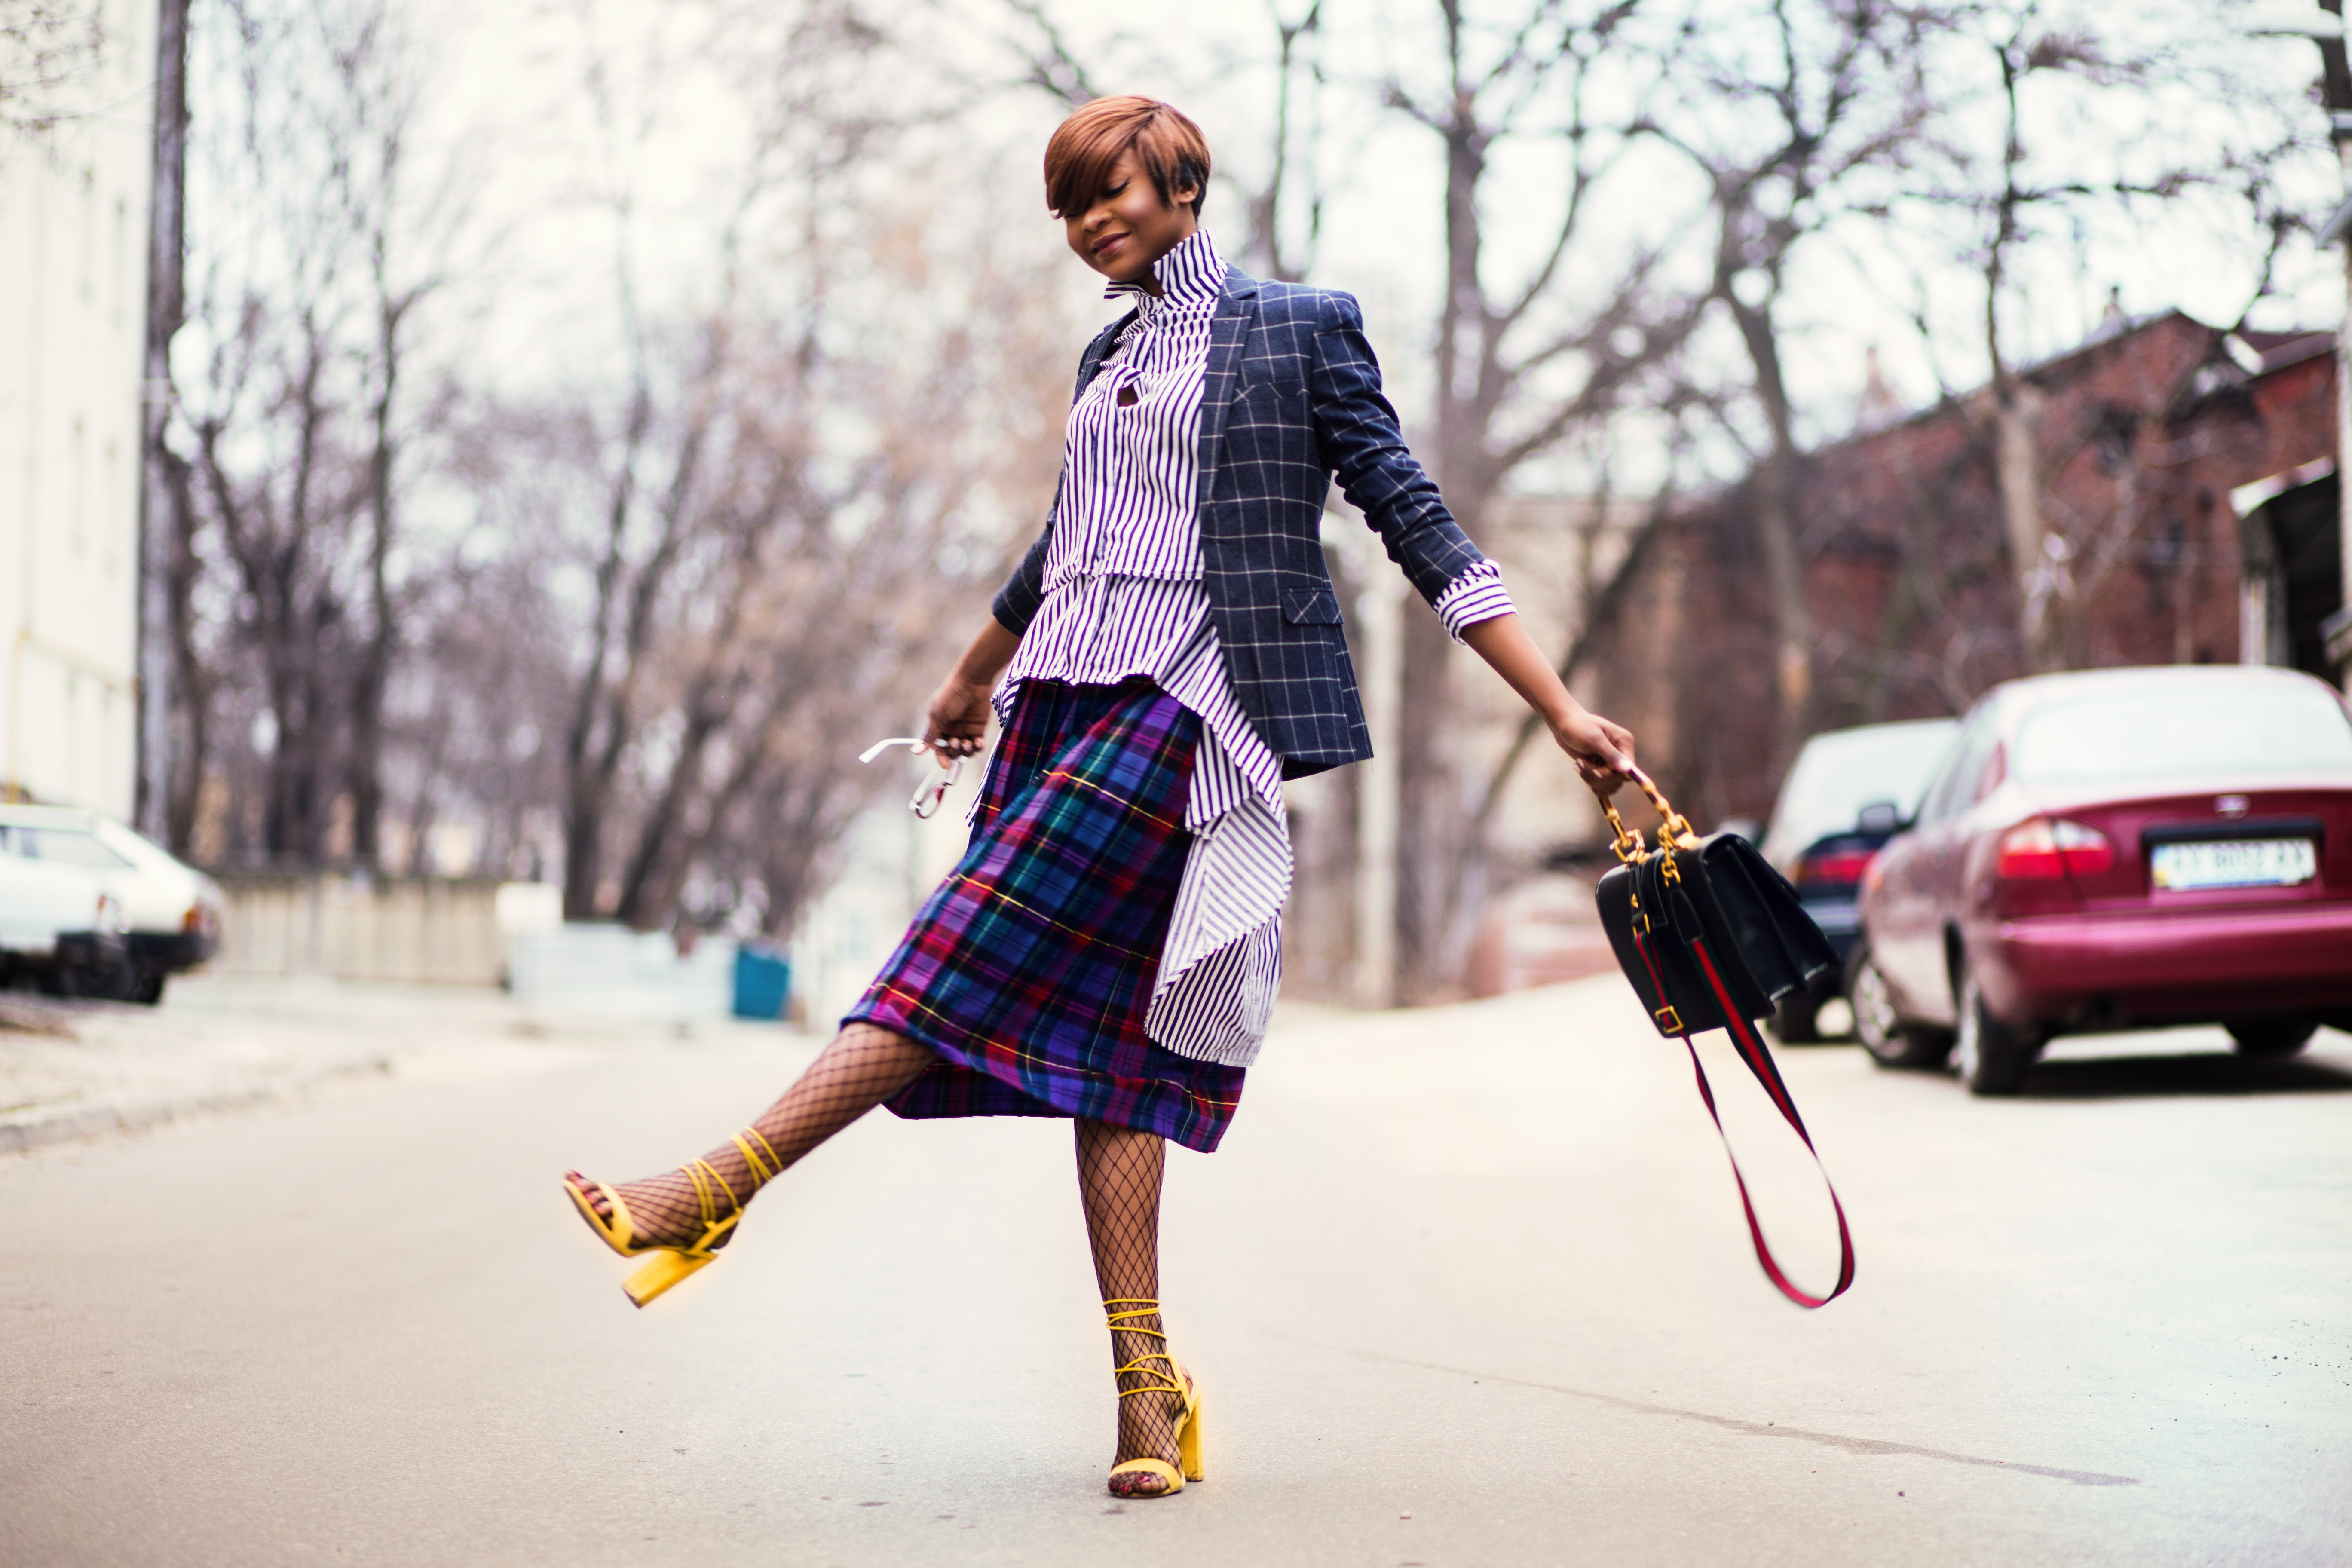 Woman in Purple Top and Plaid Skirt Near Car, Adult, Pose, Model, Outdoors, HQ Photo